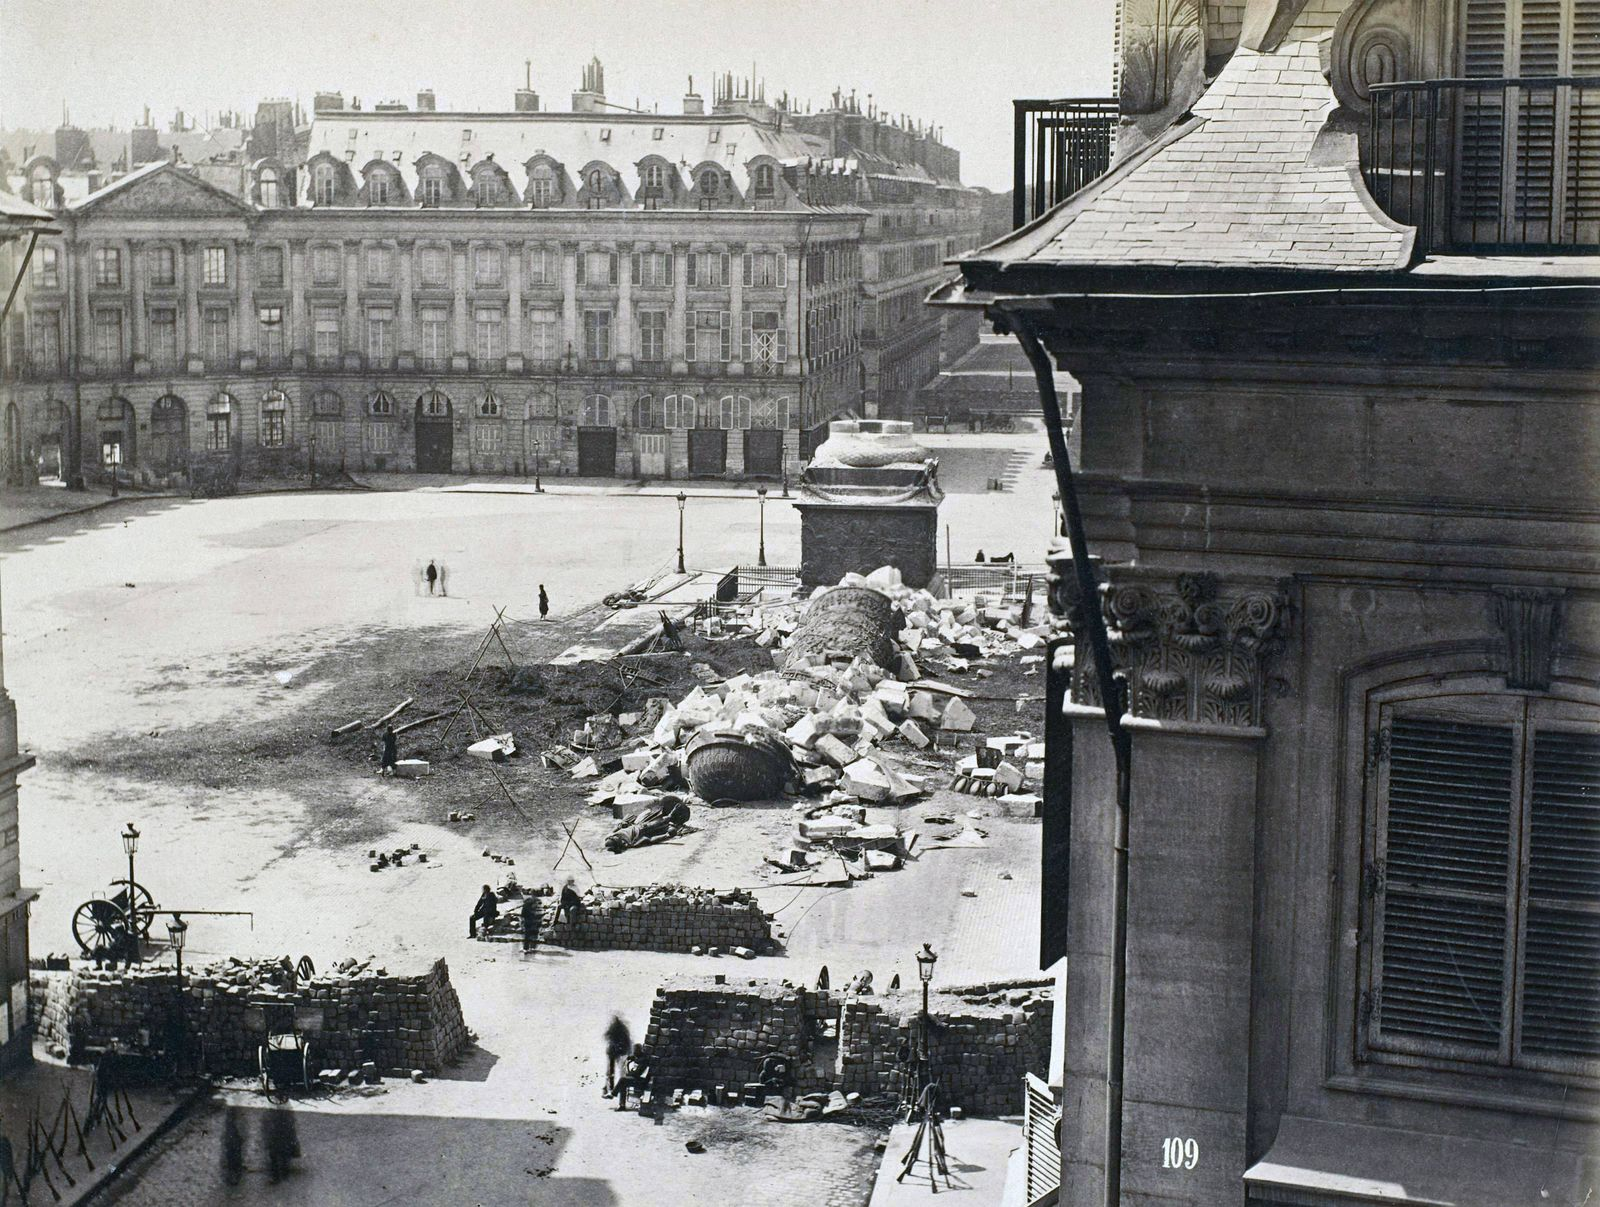 Photograph of the Palace Vendome Photograph of the destruction of the column of the Palace Vendome, Paris, during the P